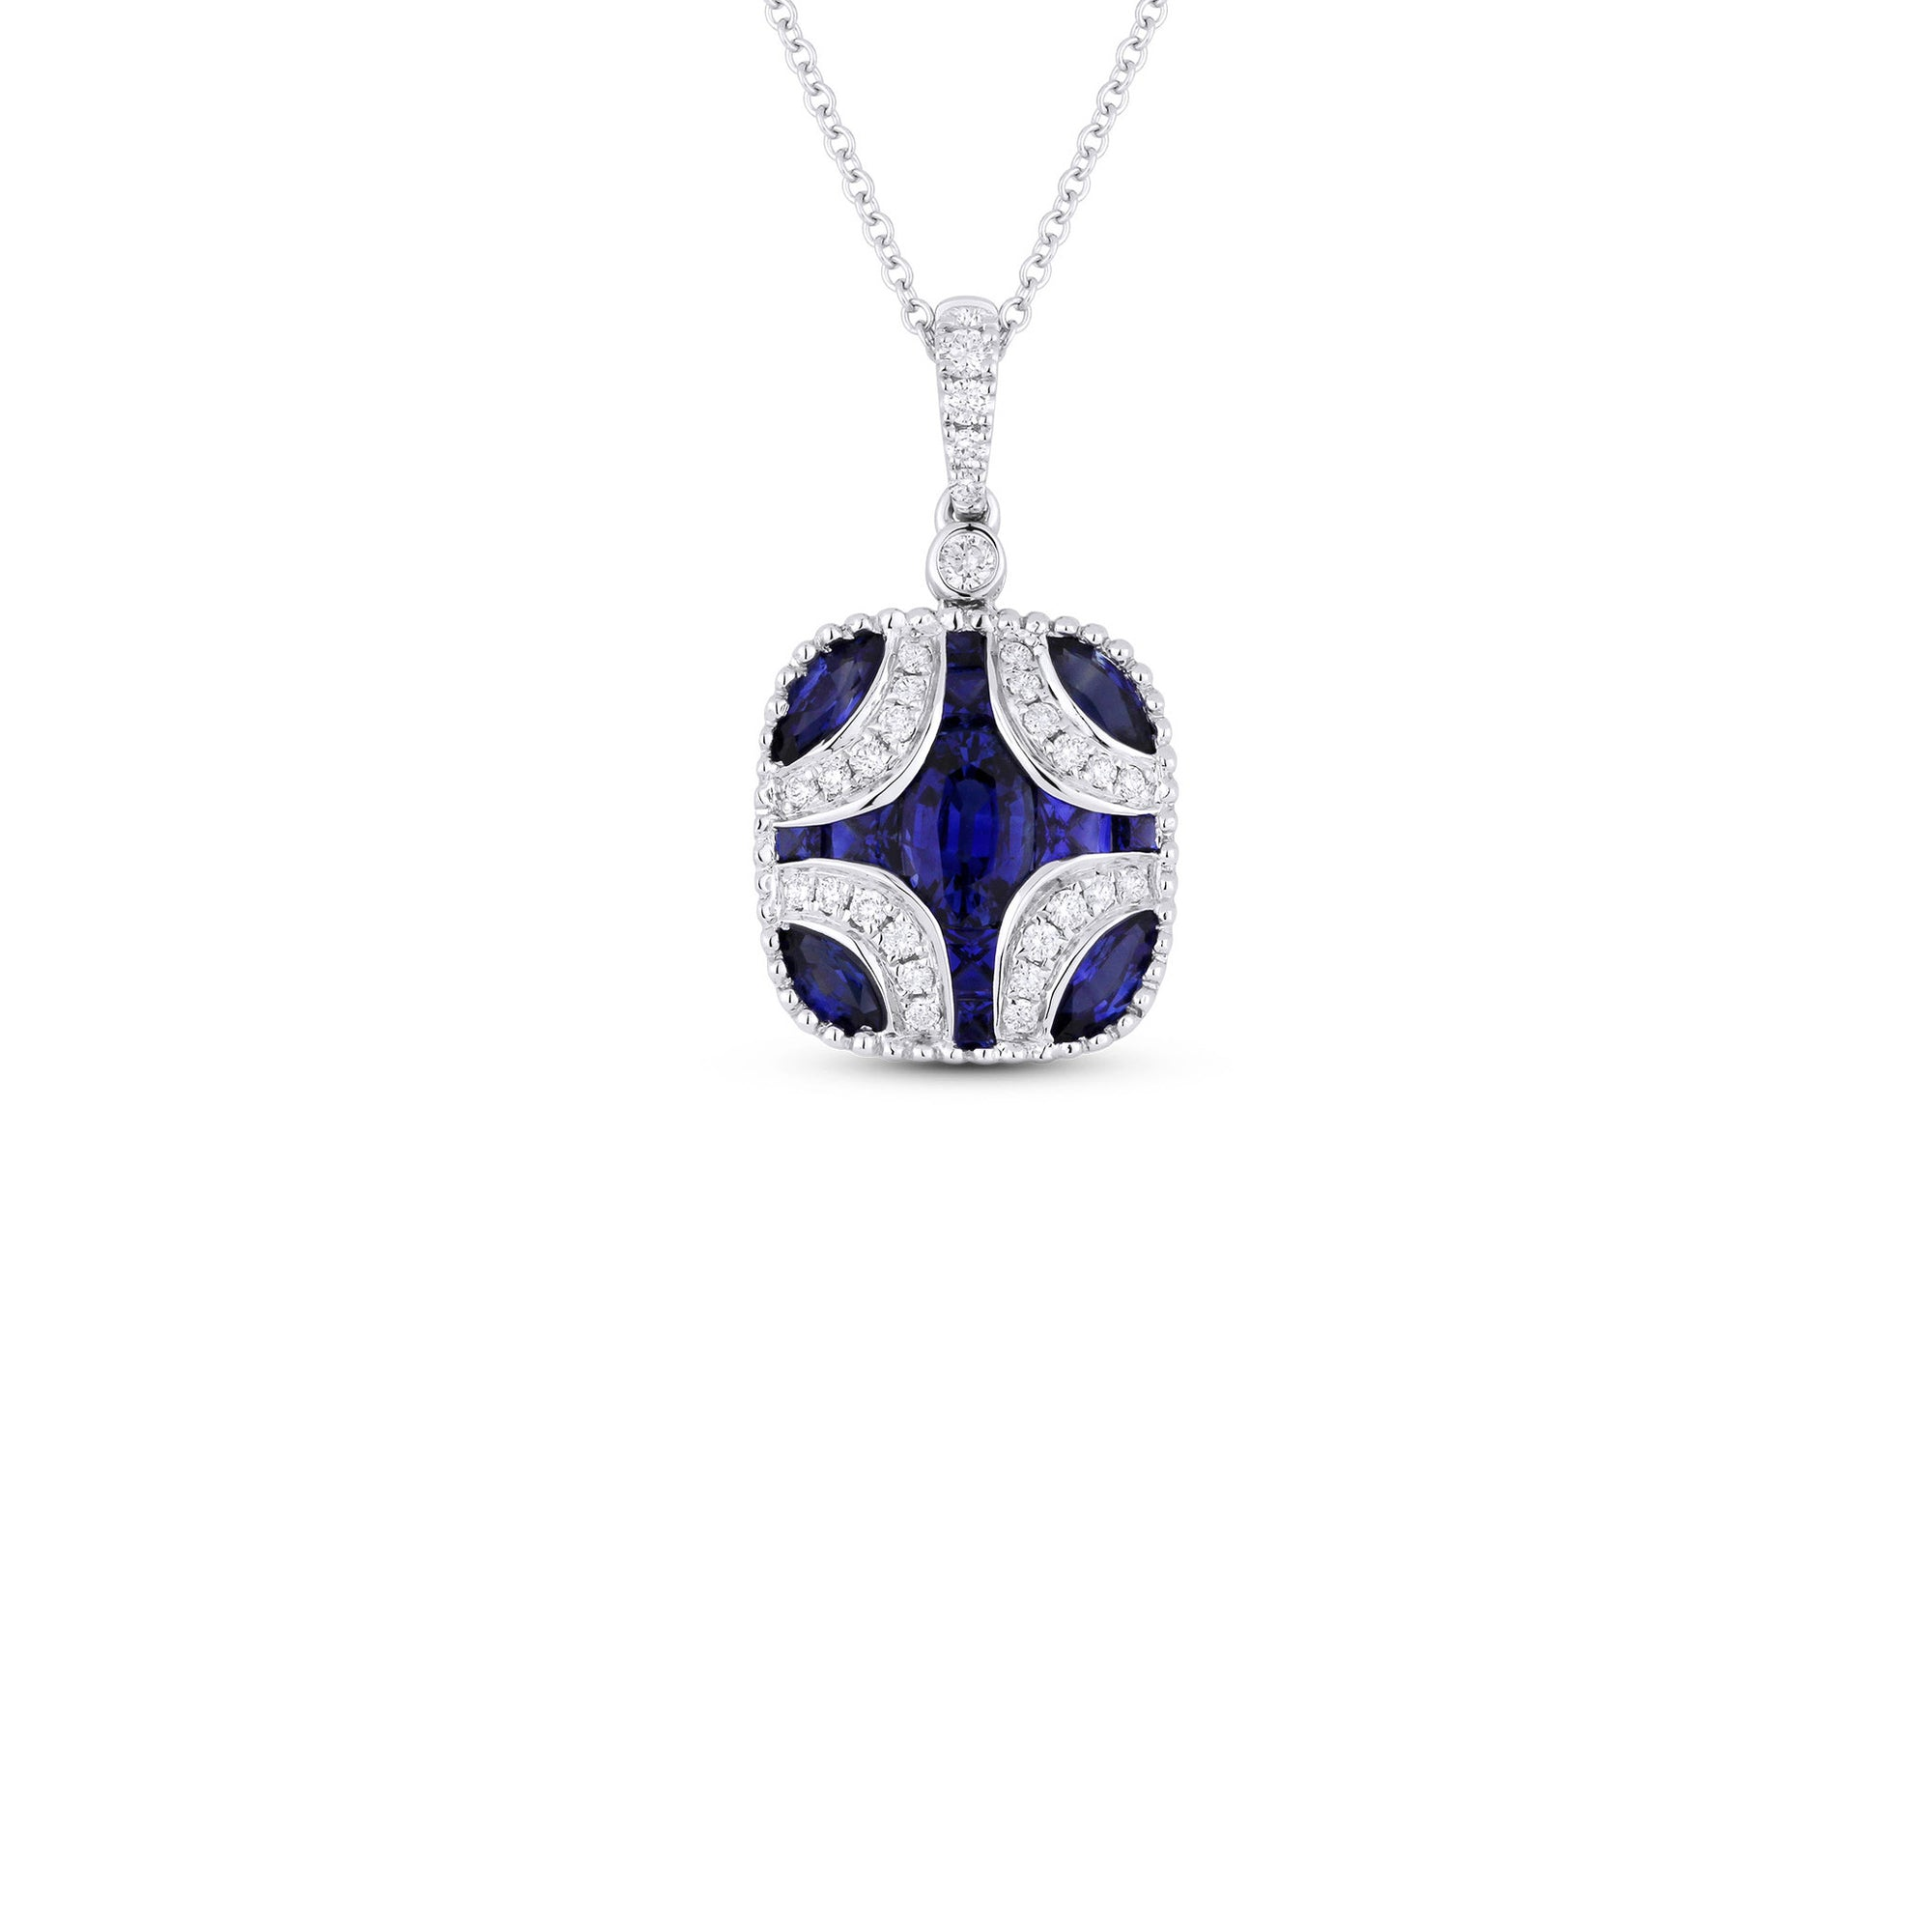 Deco inspired blue sapphire and diamond pendant necklace desires deco inspired blue sapphire and diamond pendant necklace aloadofball Gallery